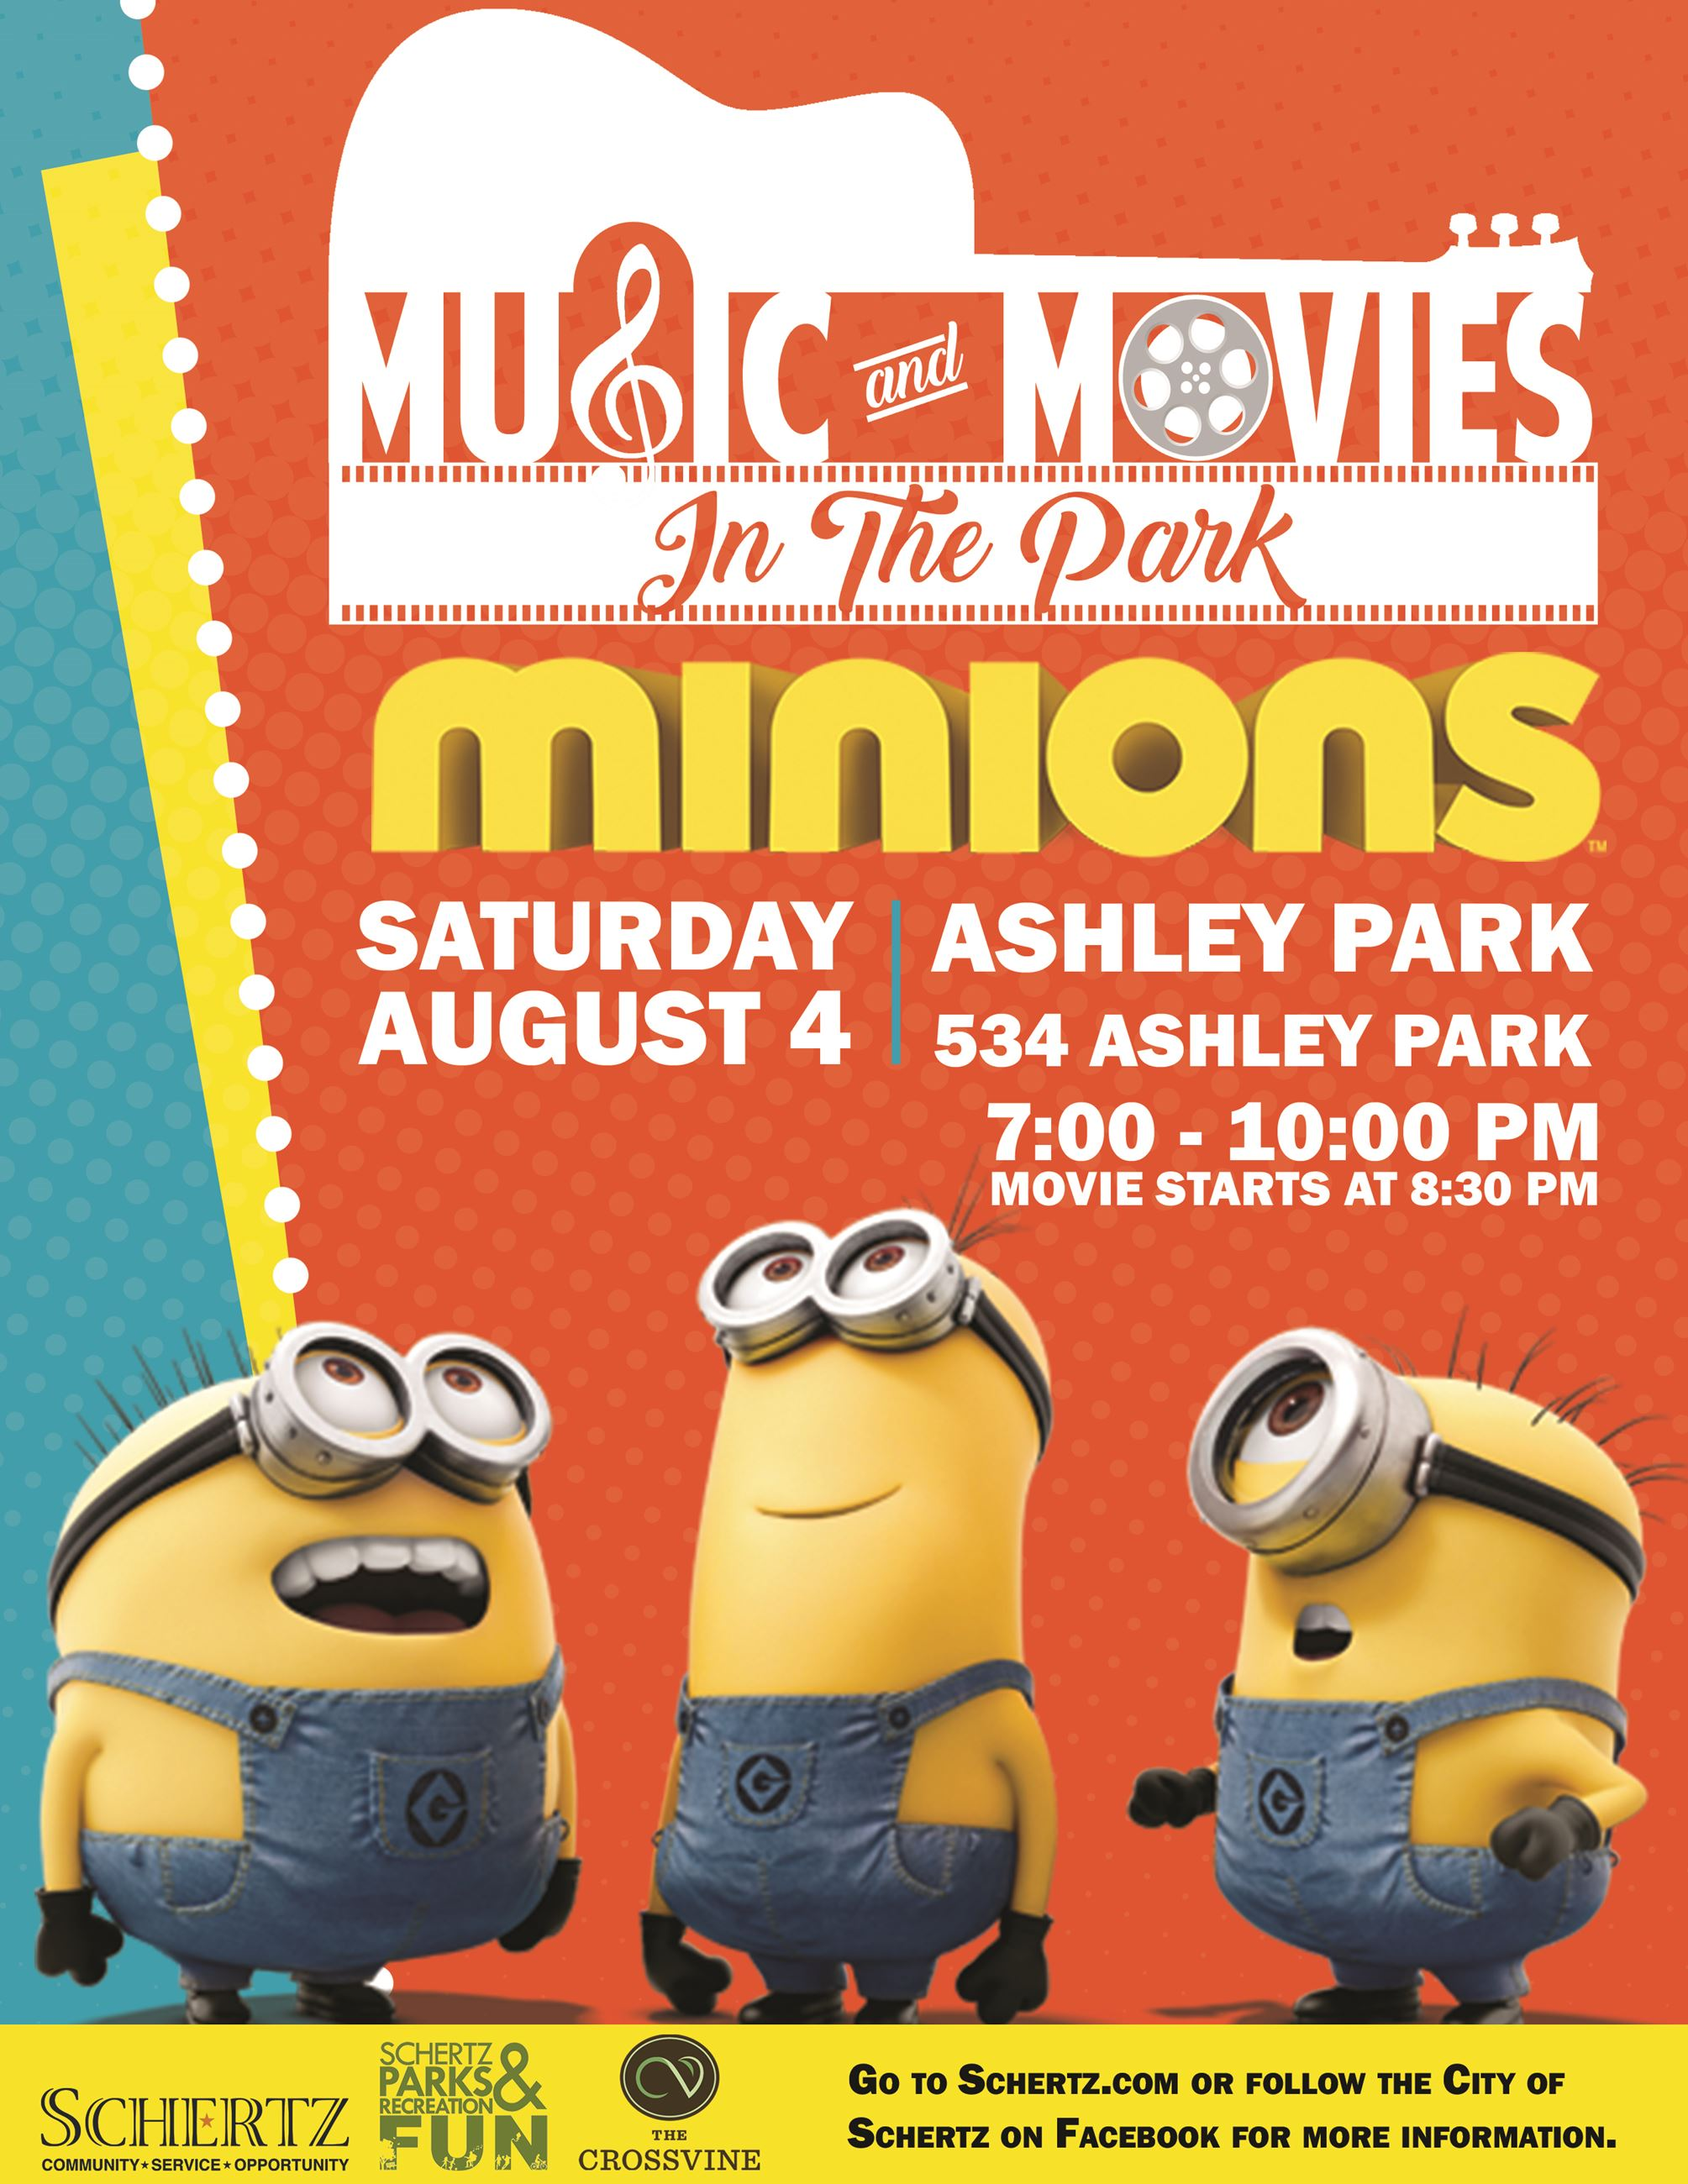 Minions Movie in the Park Flyer